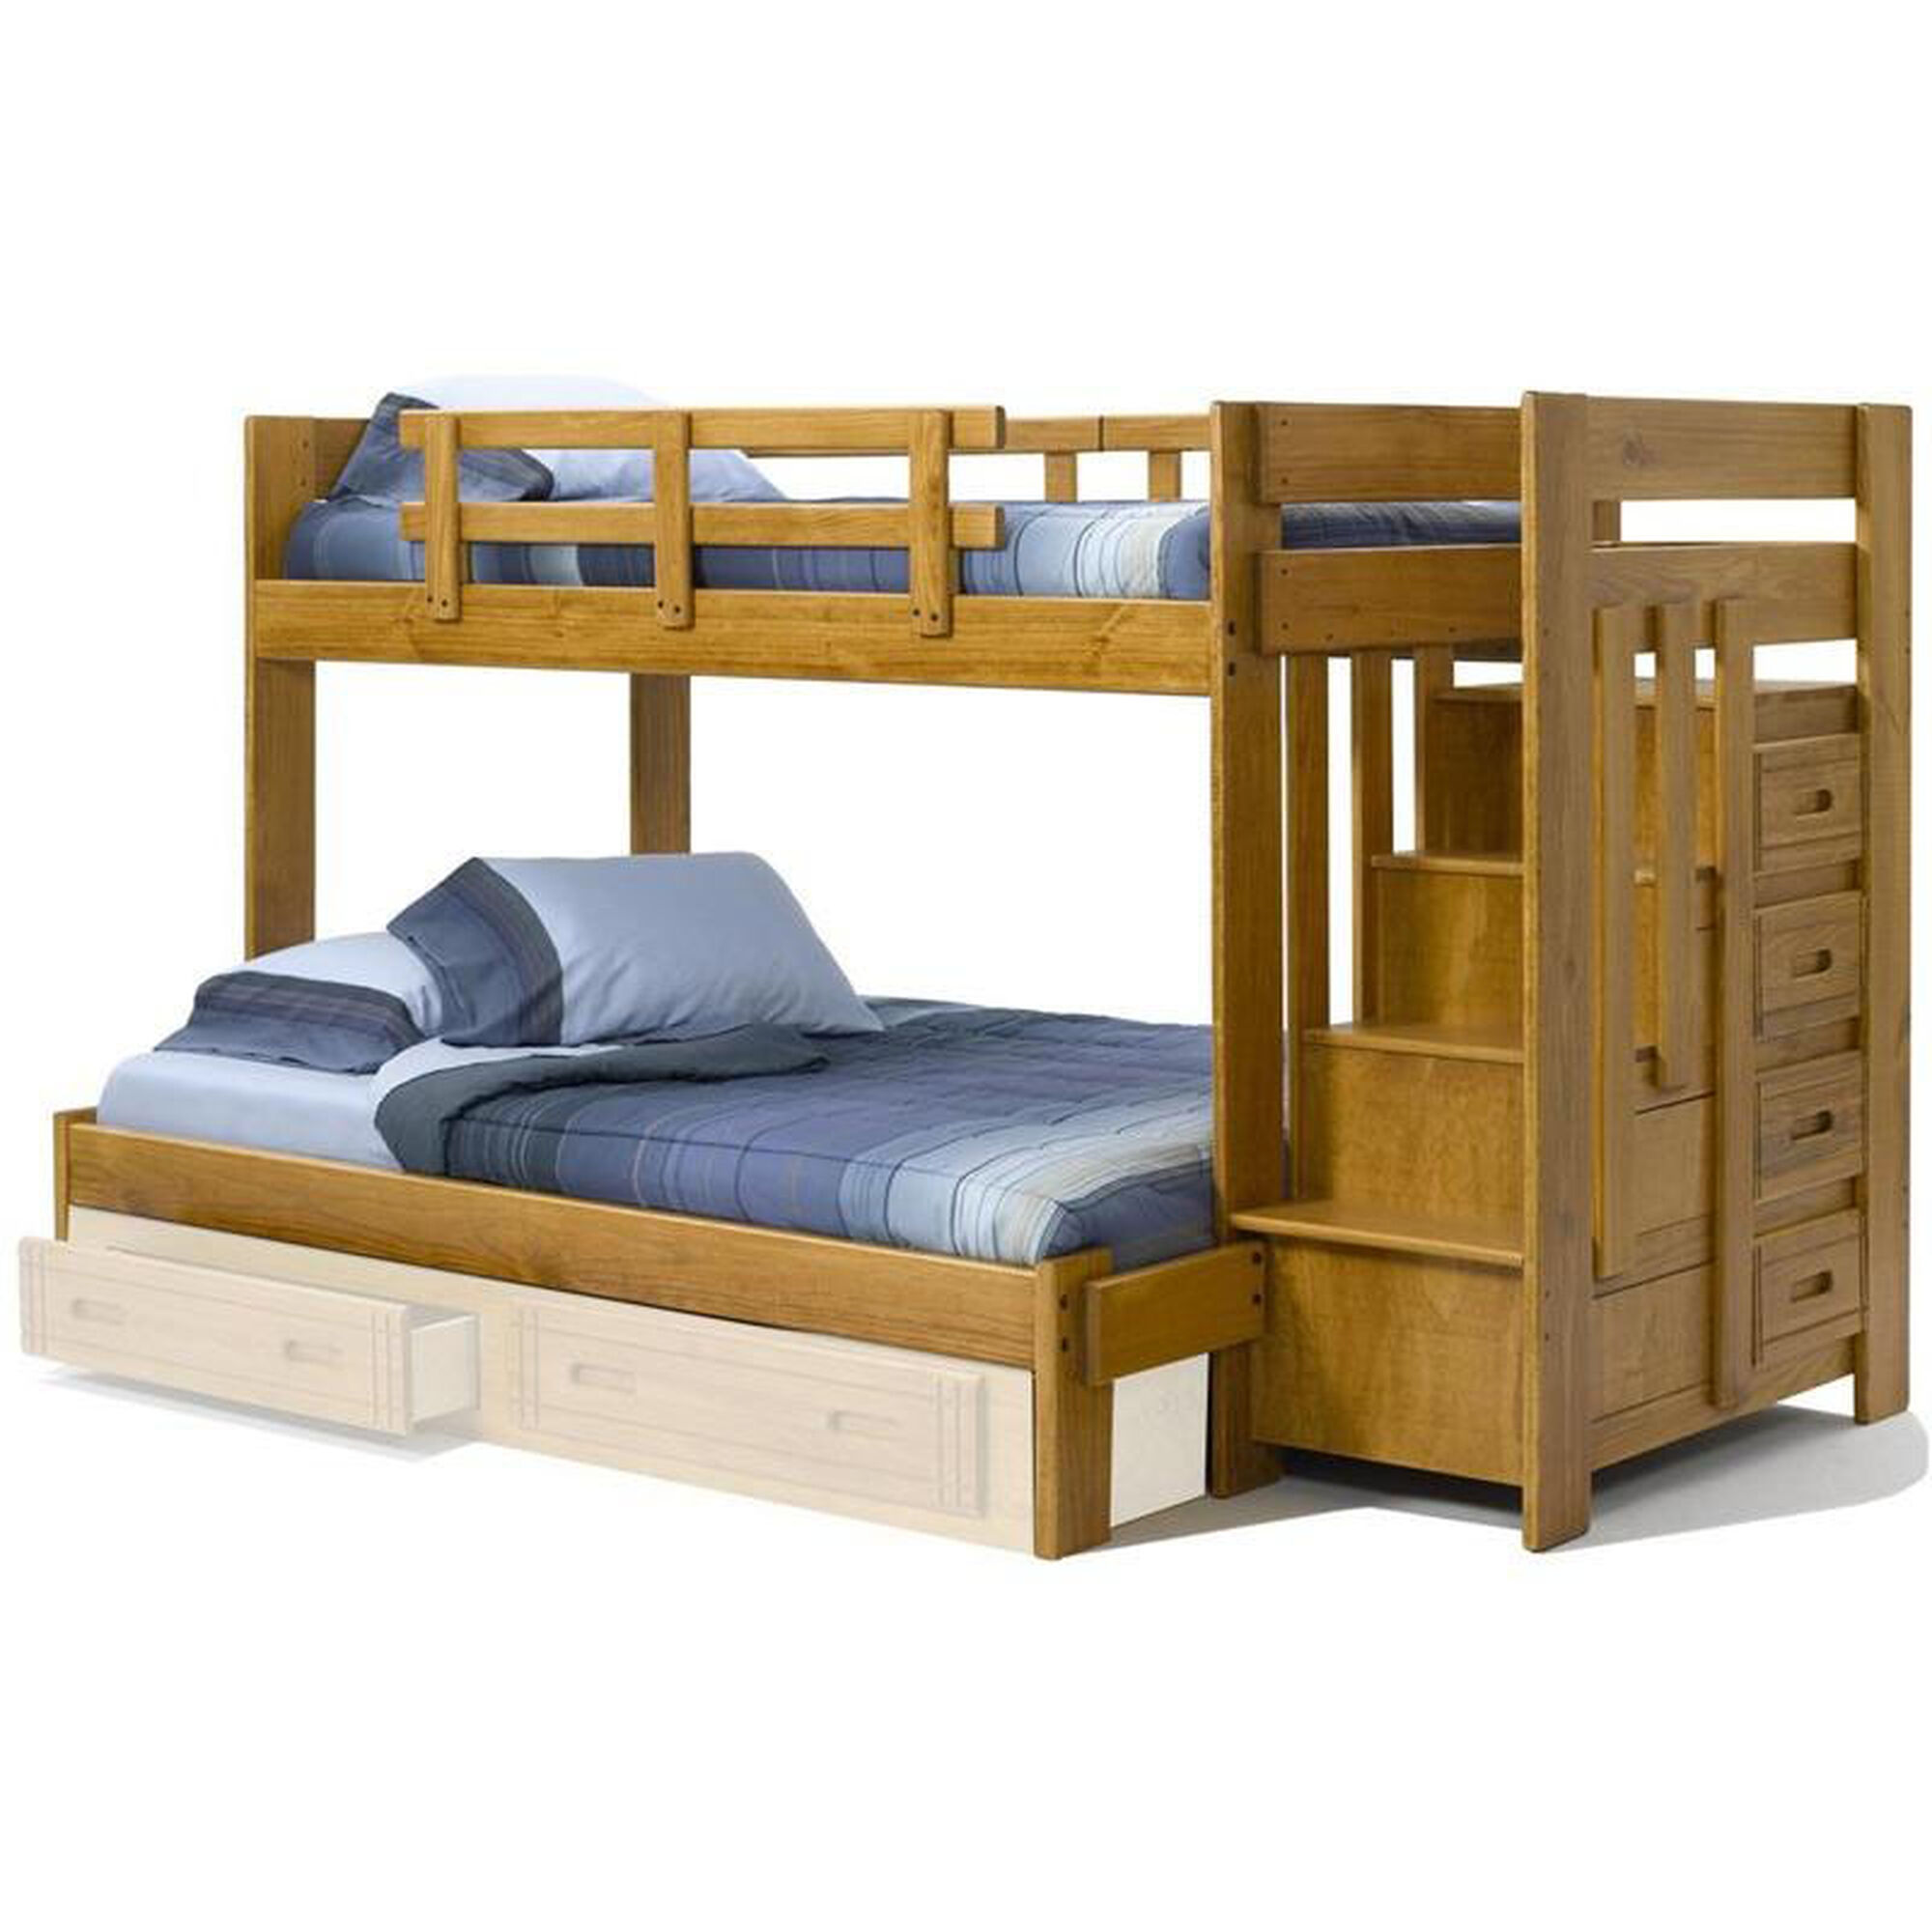 Chelsea Home Furniture Rustic Style Solid Pine Bunk Bed With Stairway Chest Twin Over Full